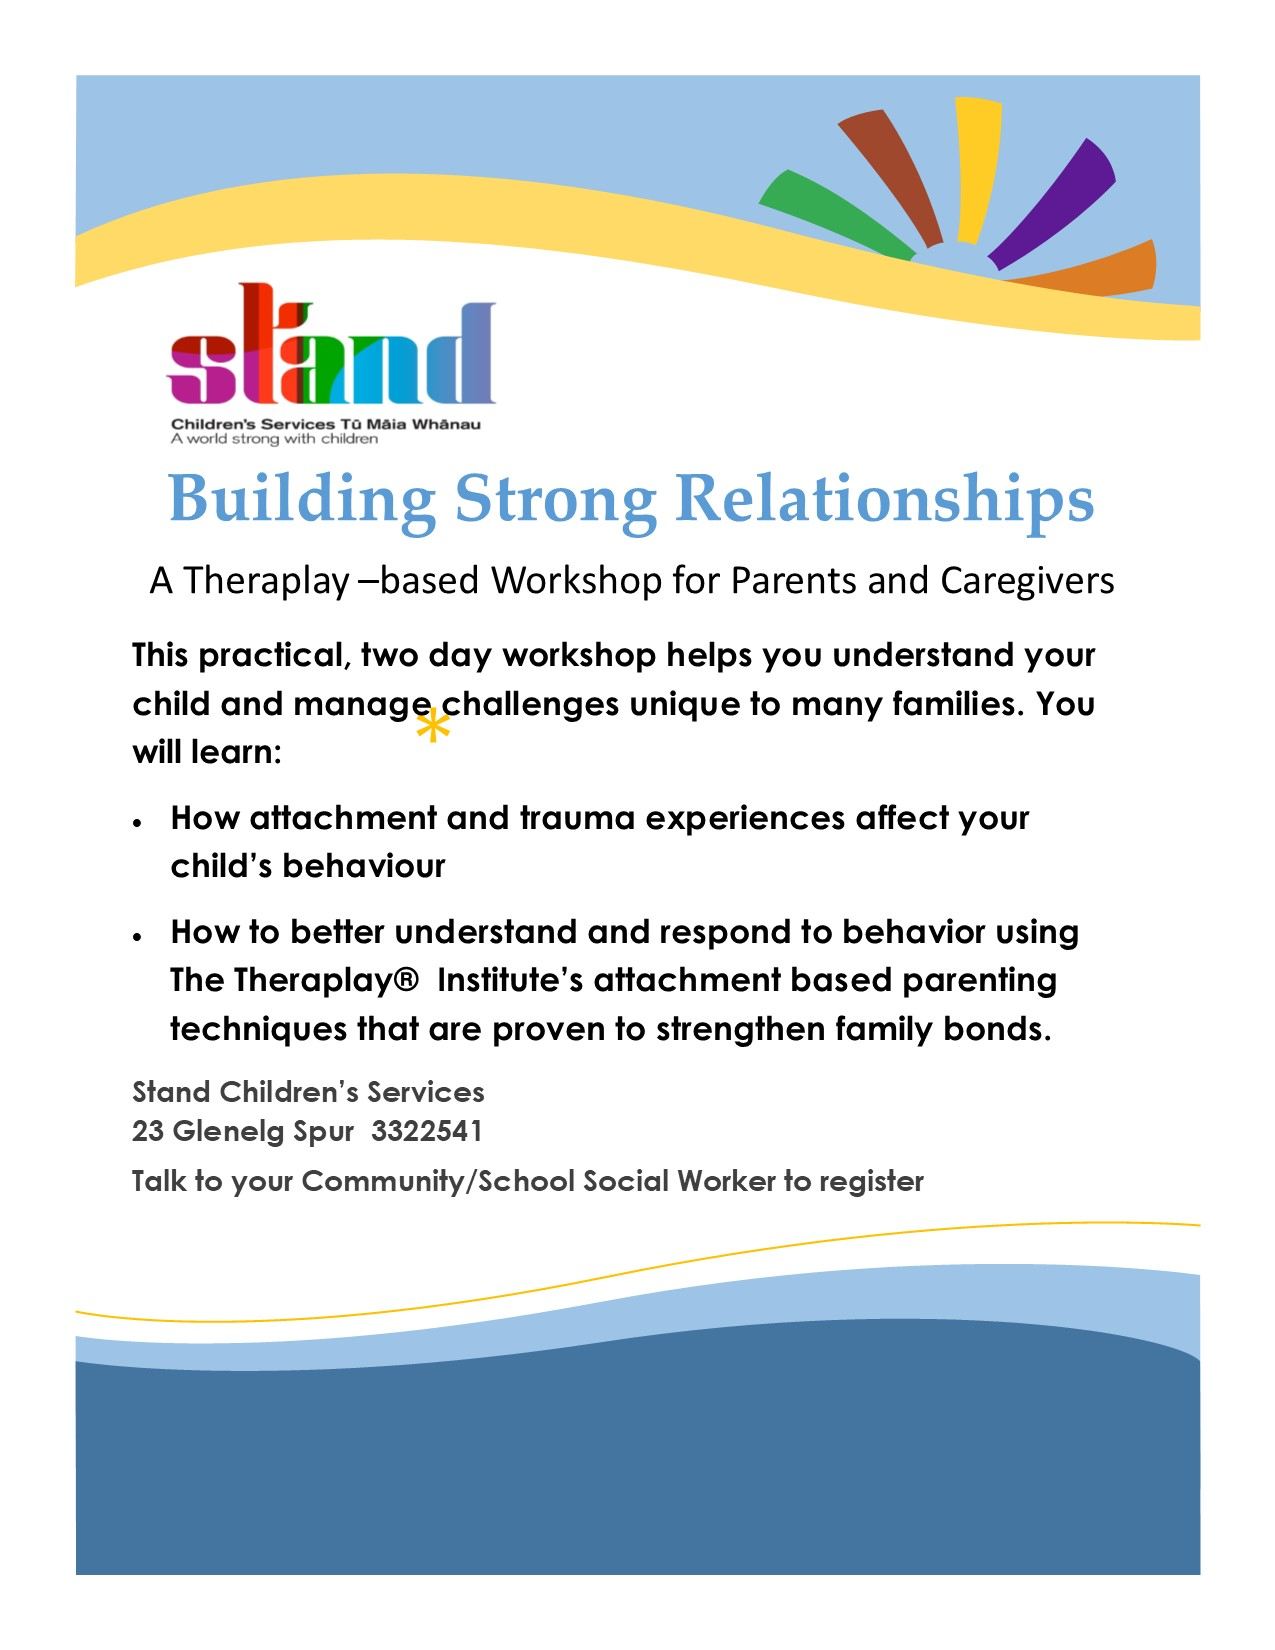 Theraplay Parent Workshop Blurb.jpg